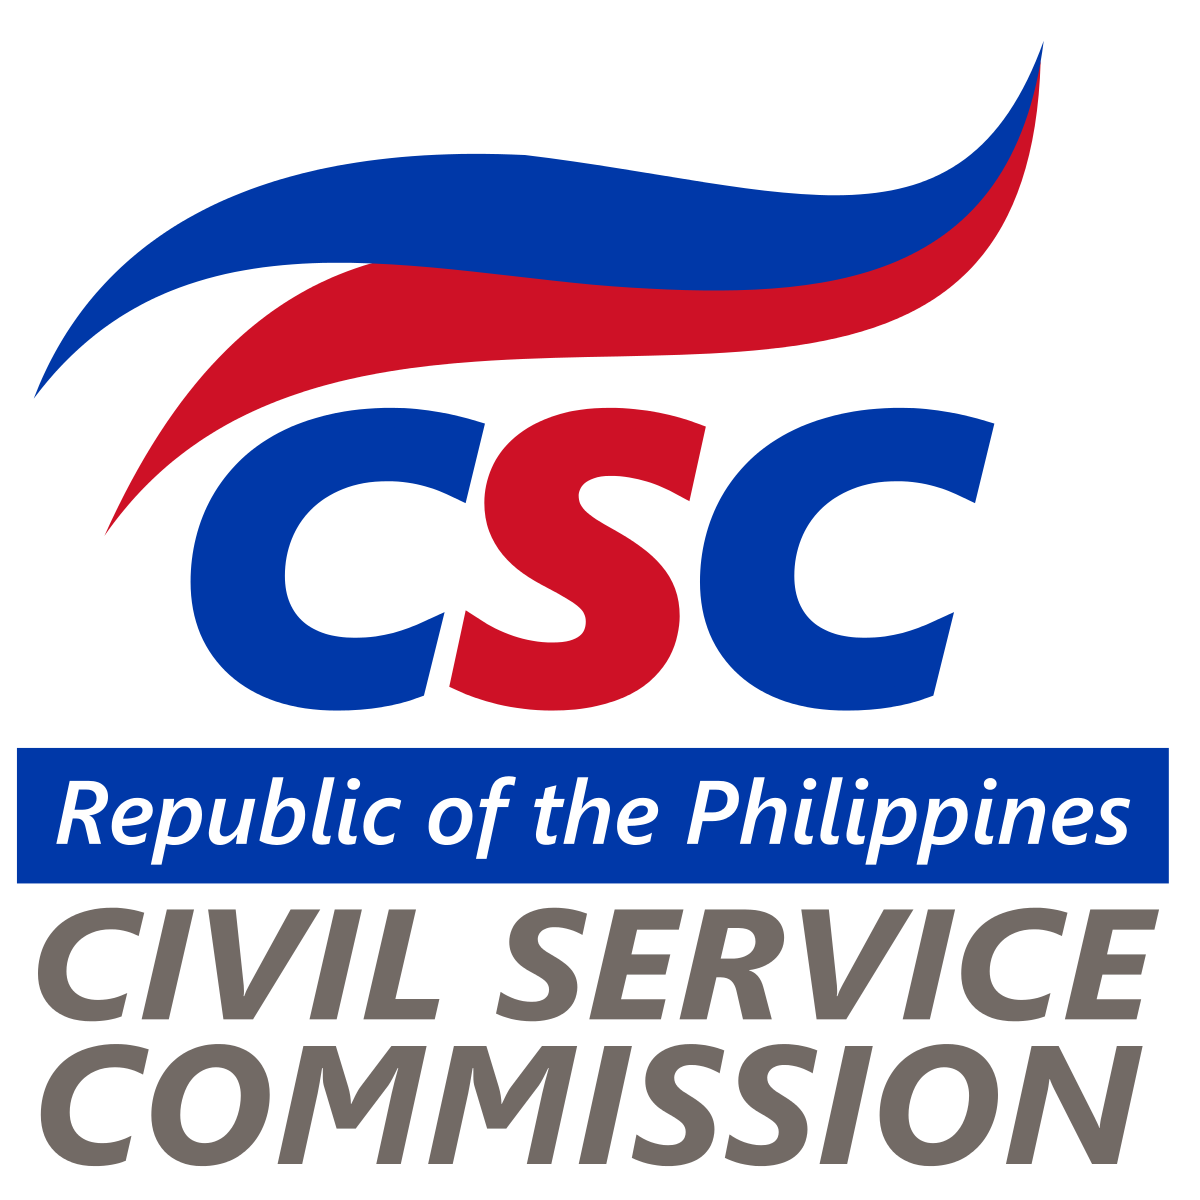 Constitution vector we the person. Civil service commission of